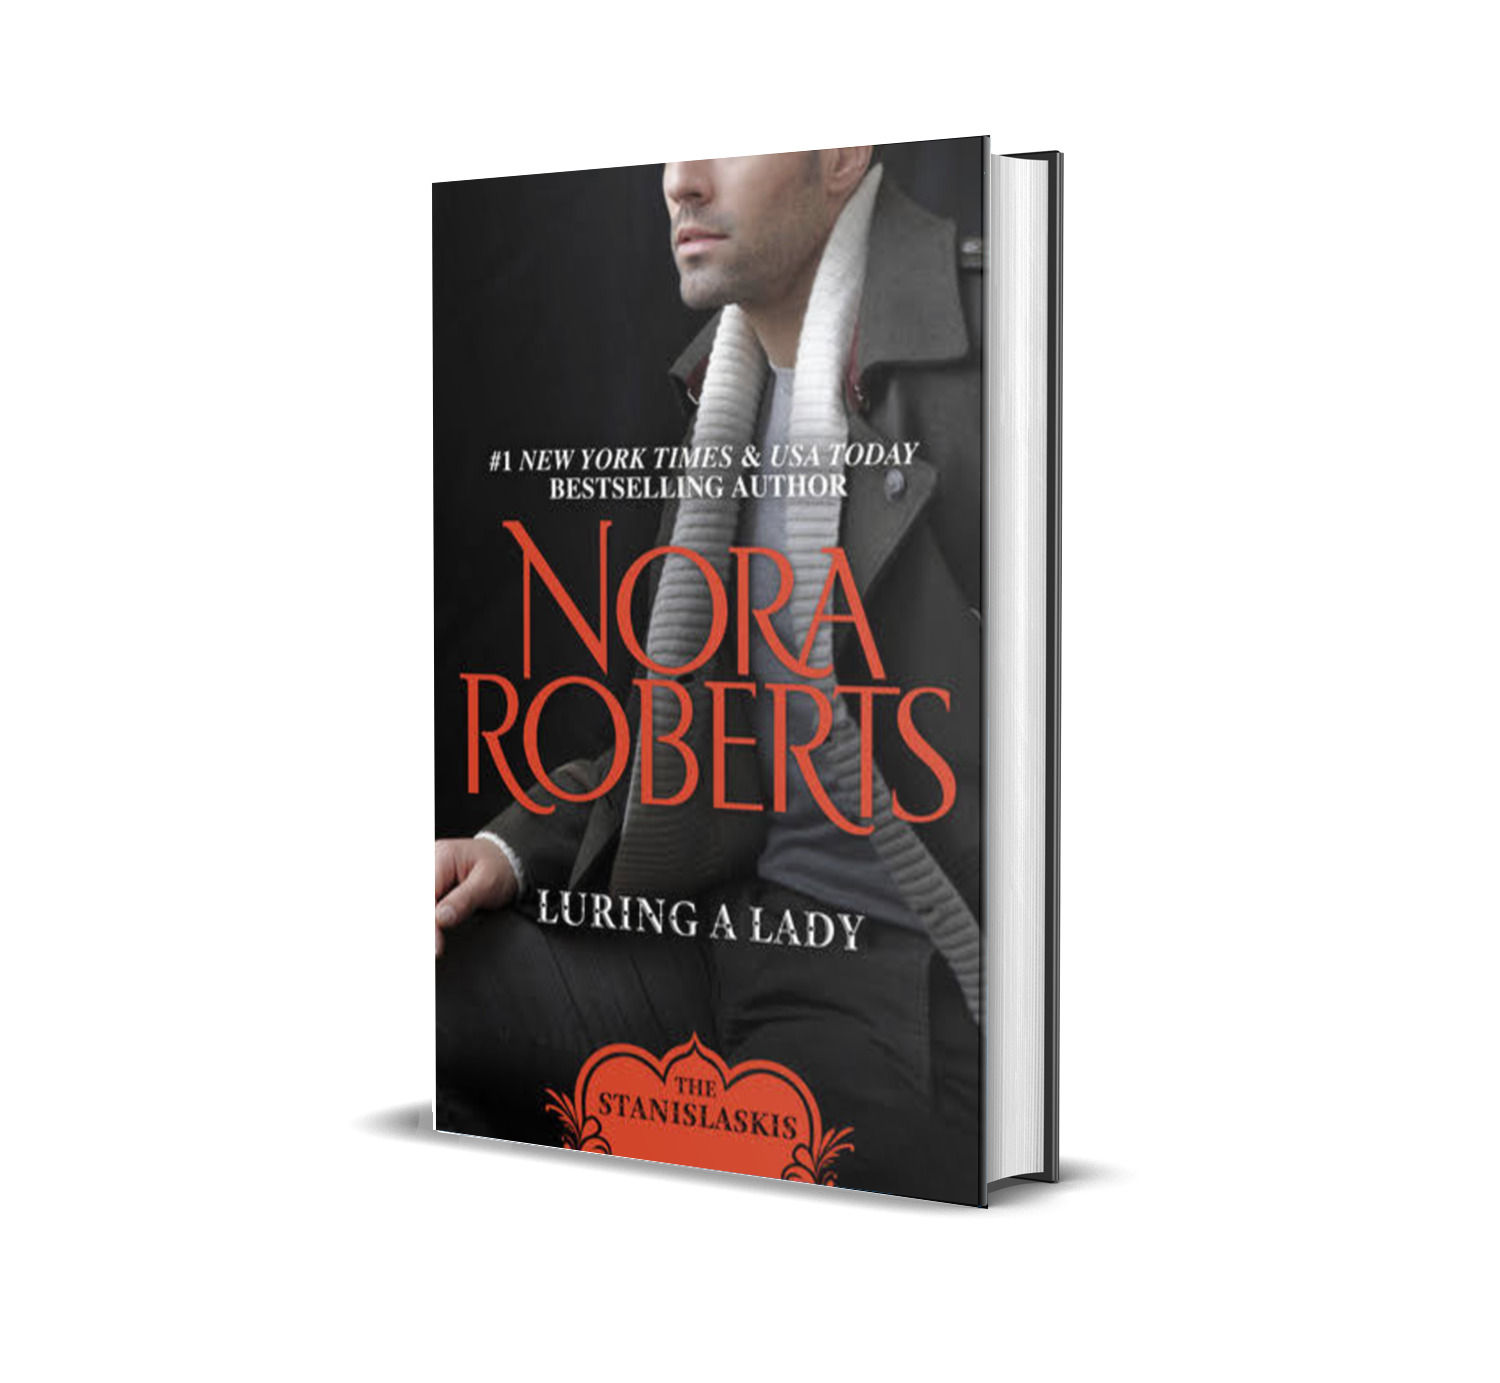 LURING A LADY NORA ROBERTS